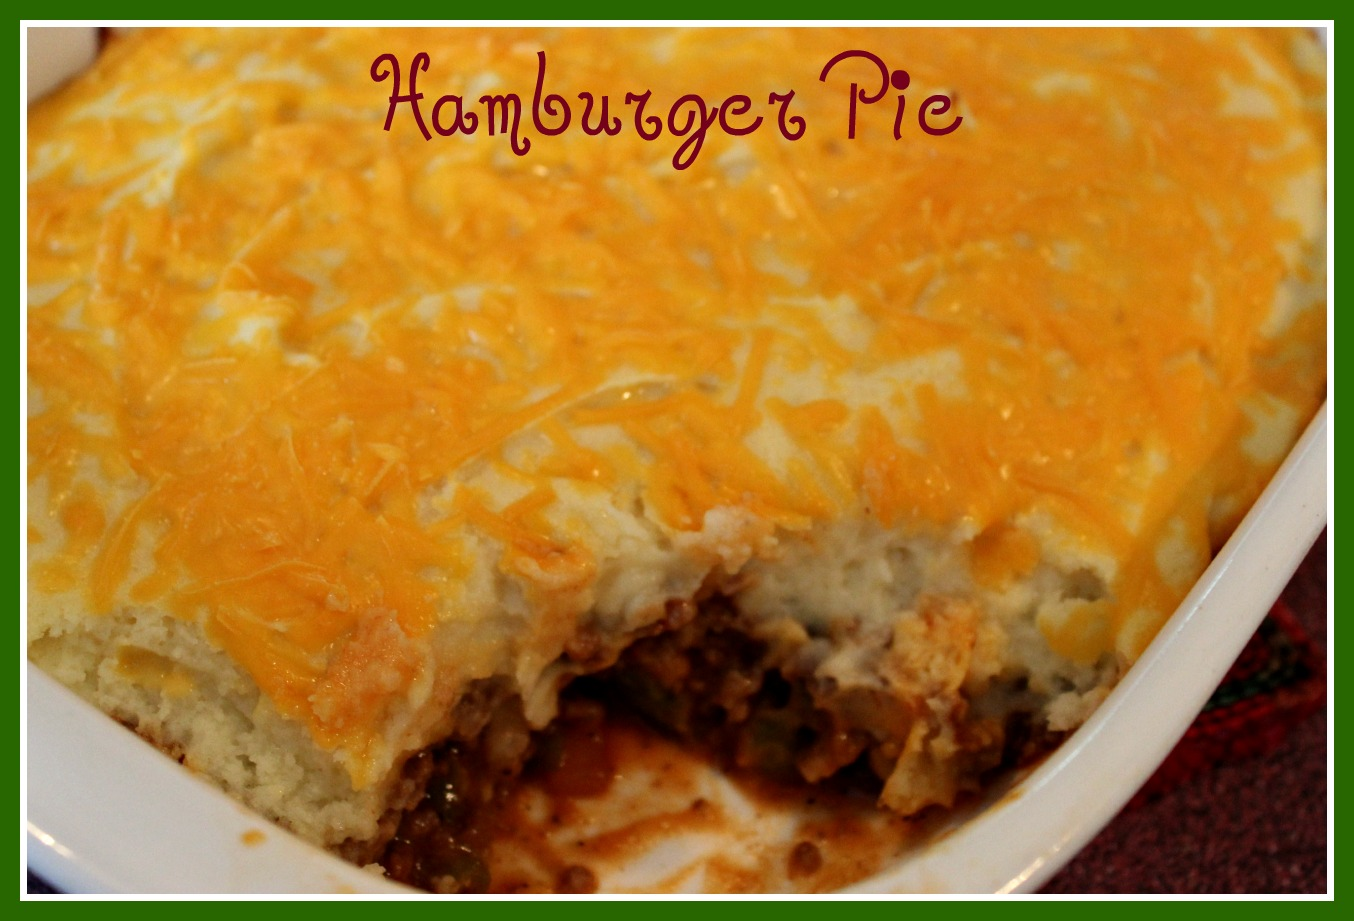 Hamburger Pie!